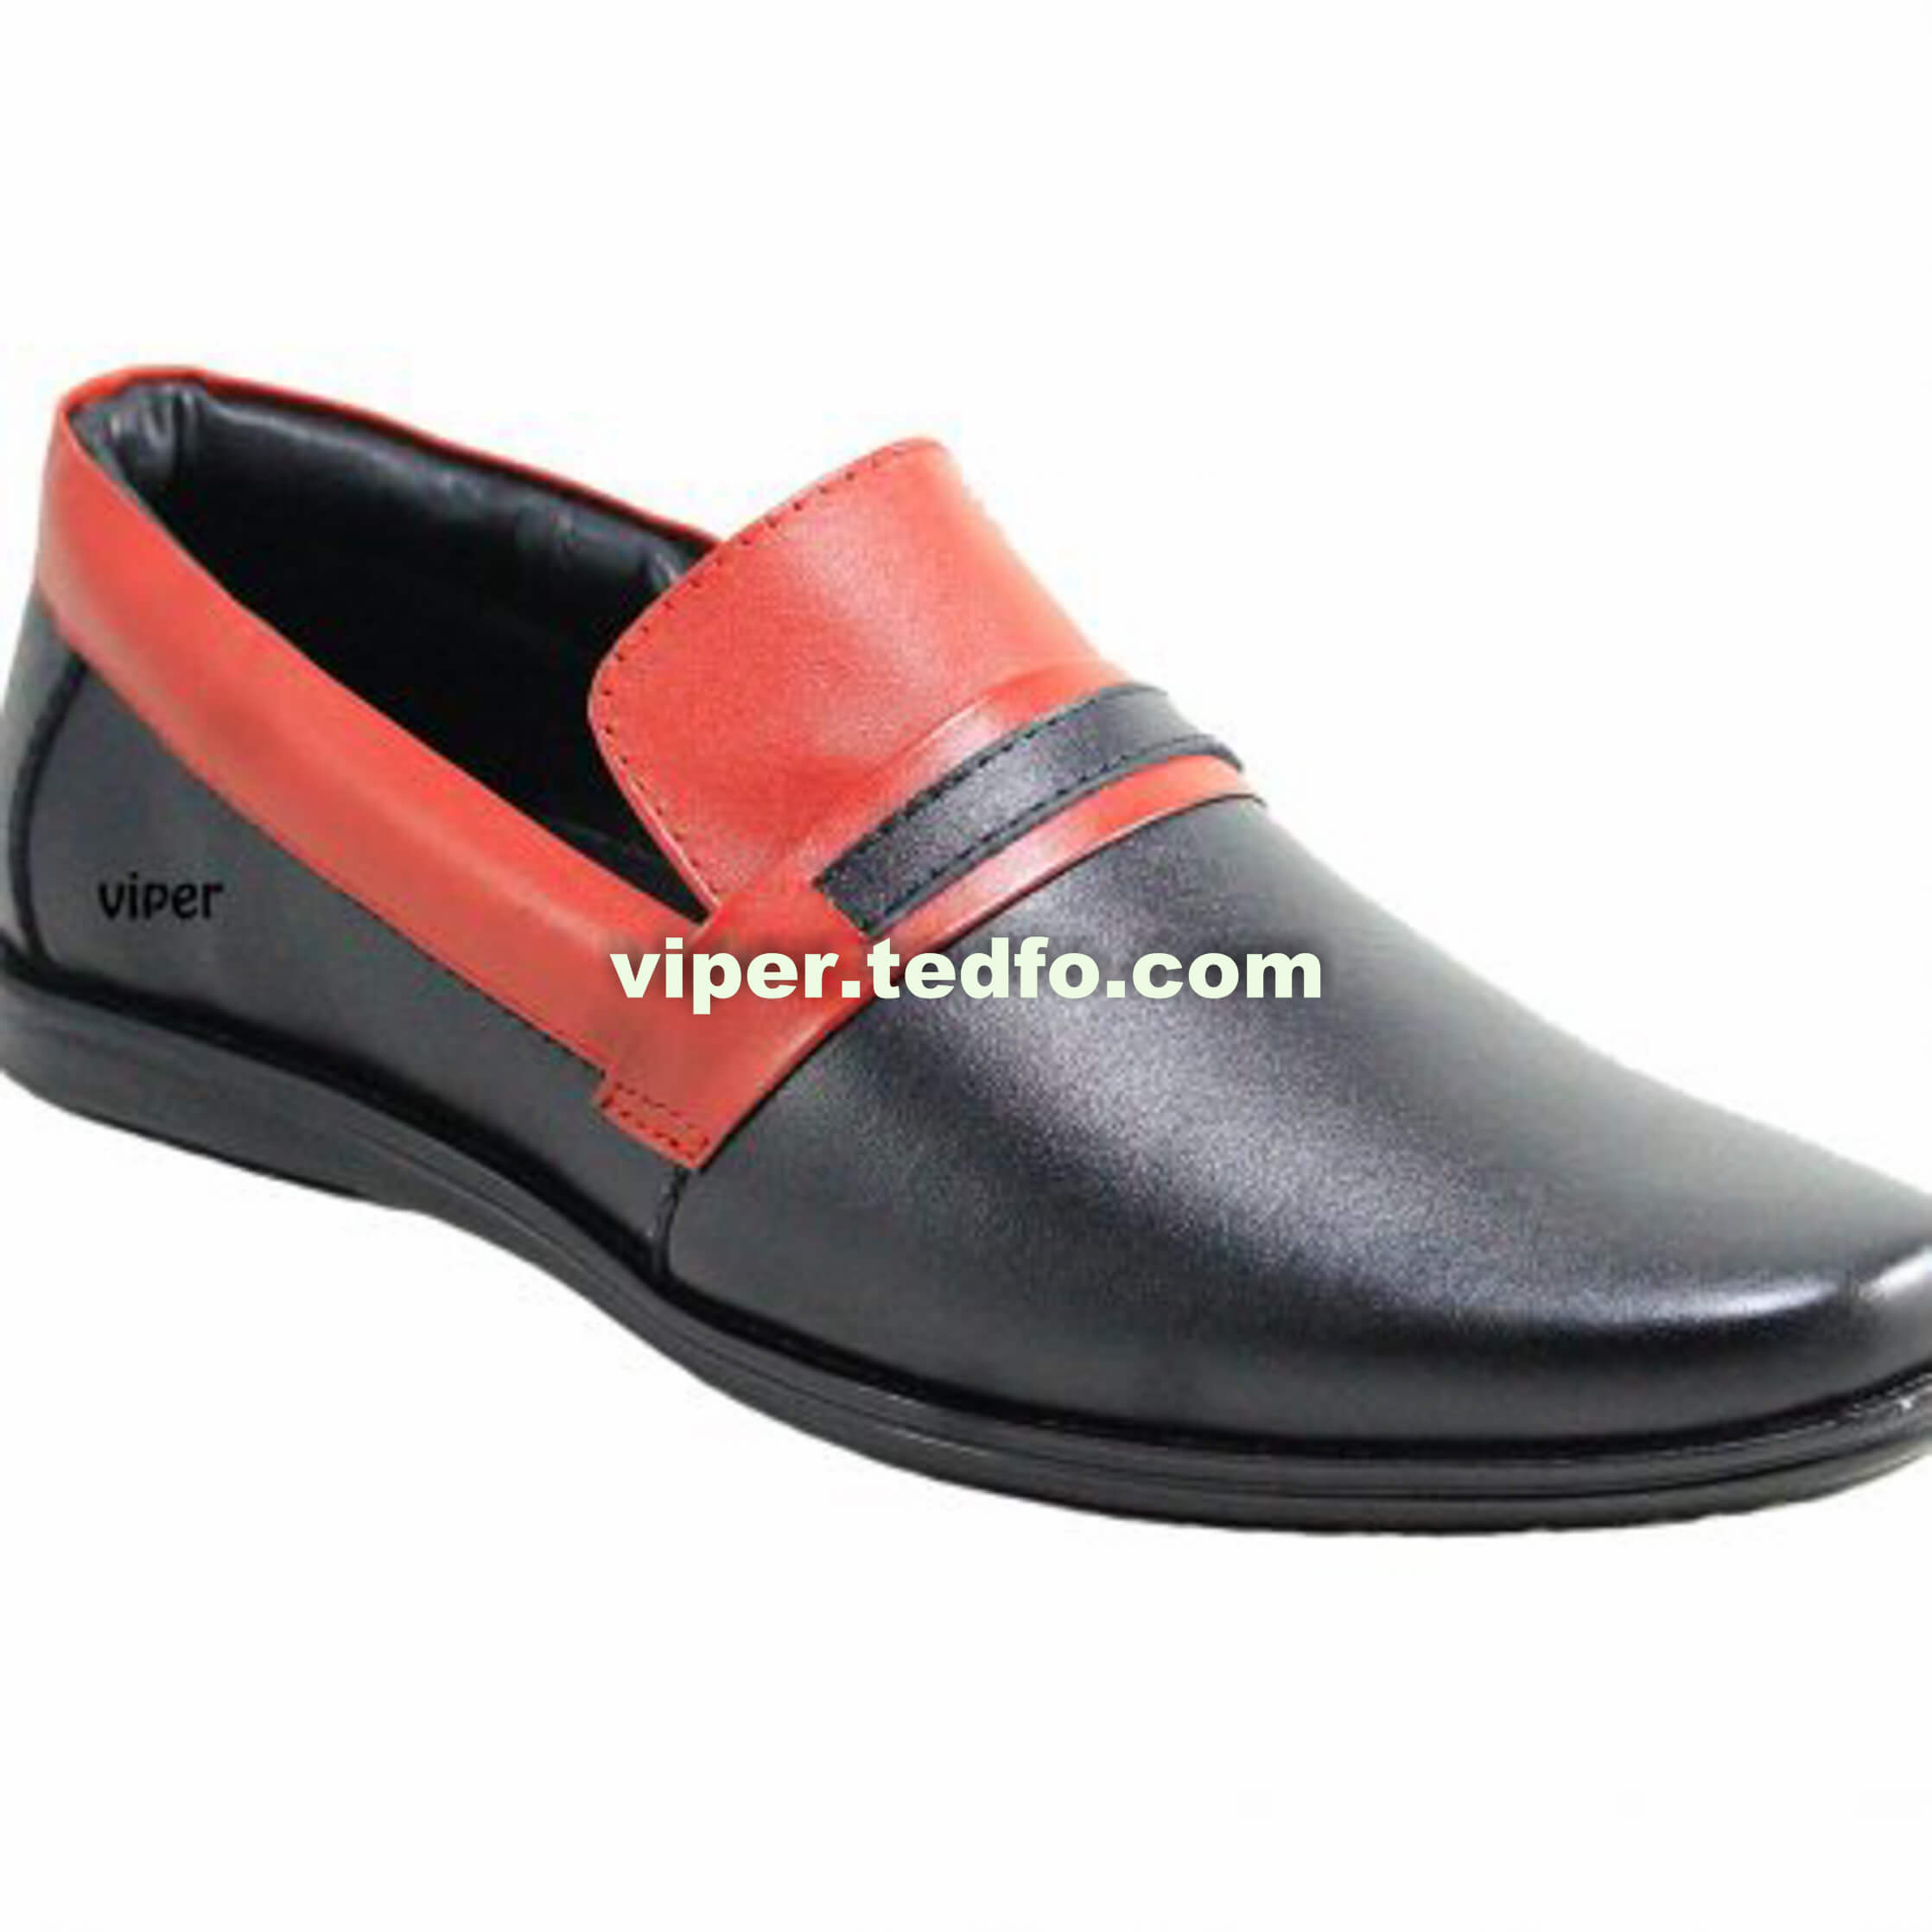 Viper Leather Loafer 837, Made in Bangladesh